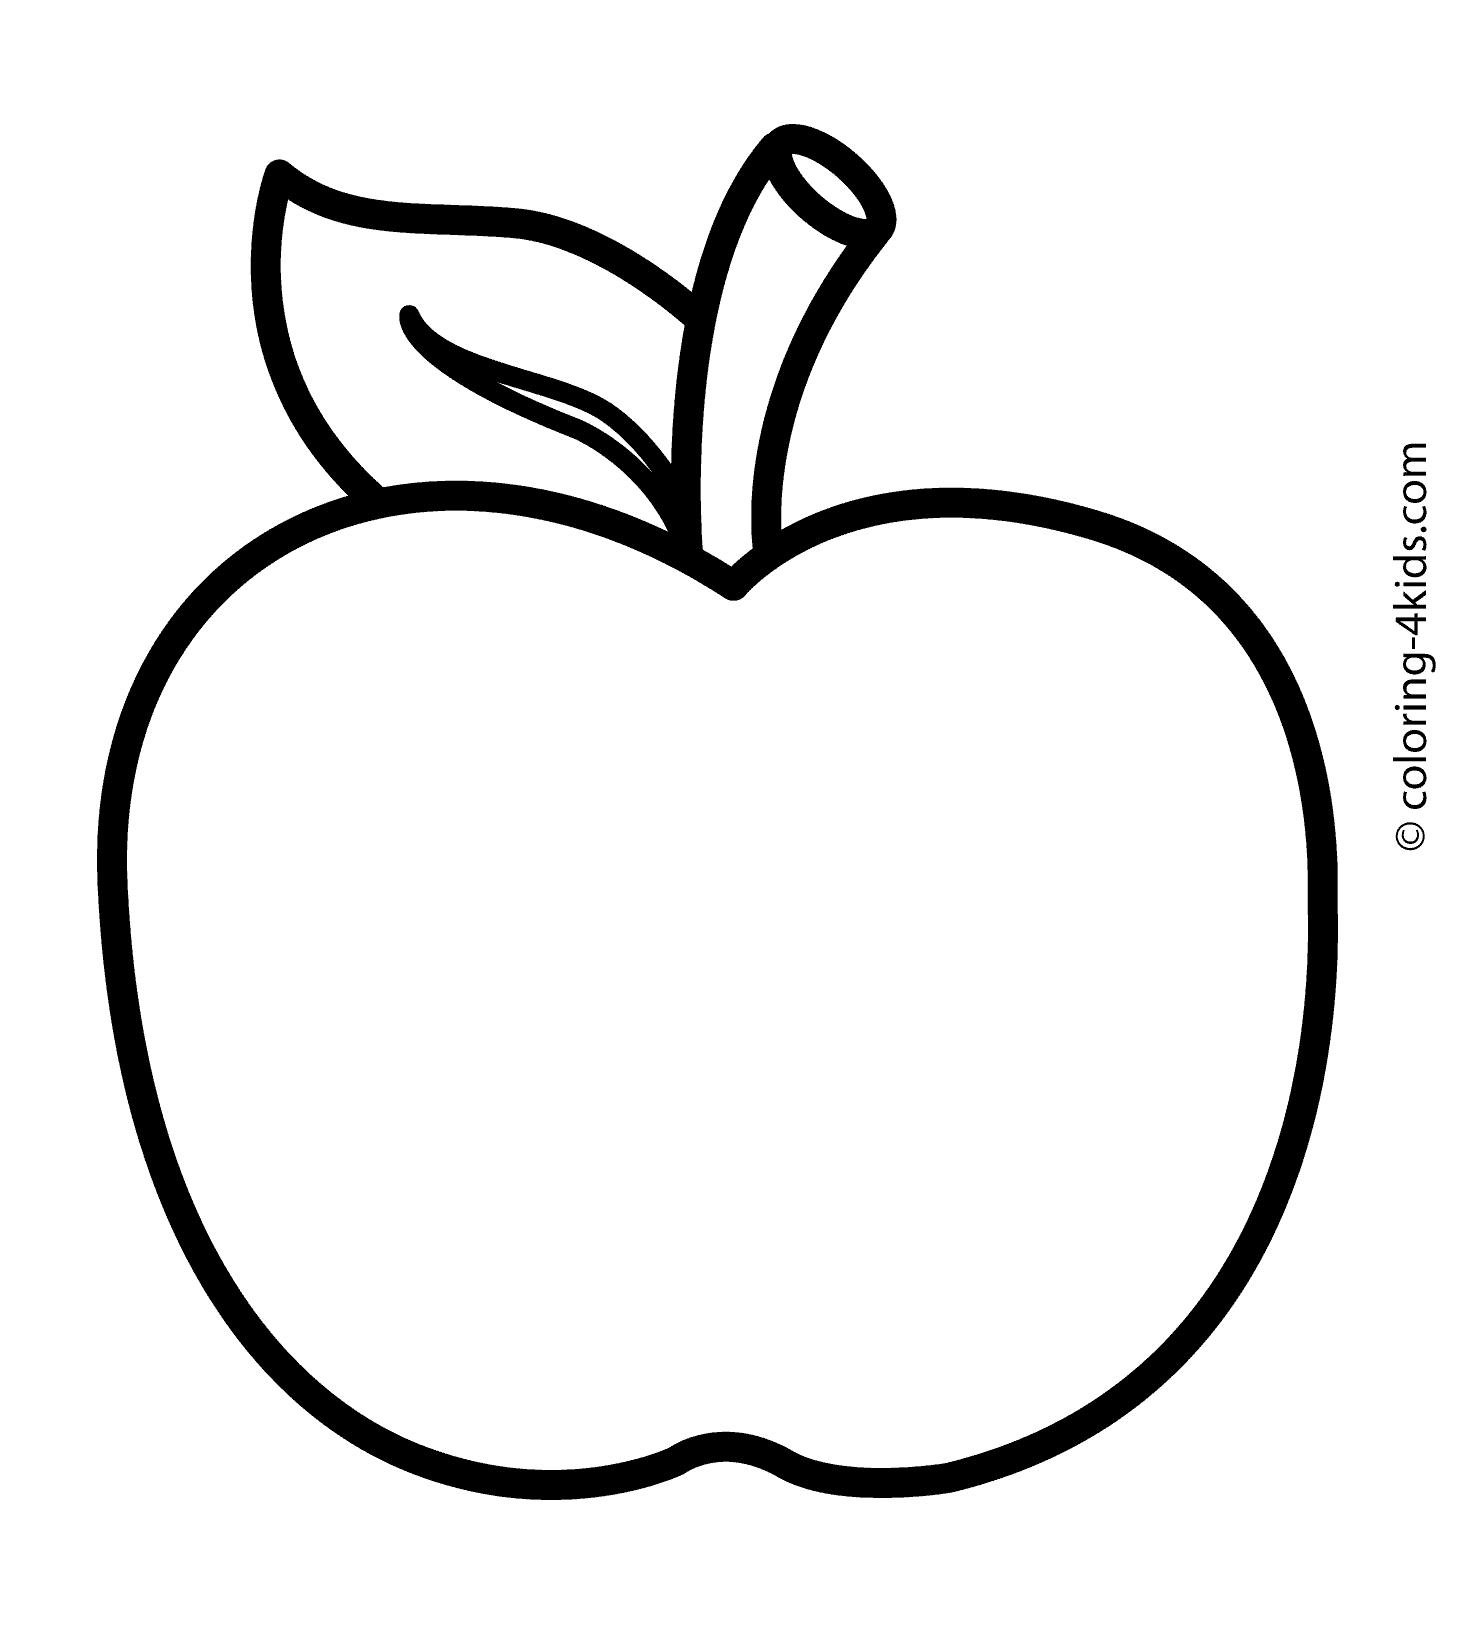 apple coloring pages - apple coloring pages 2021